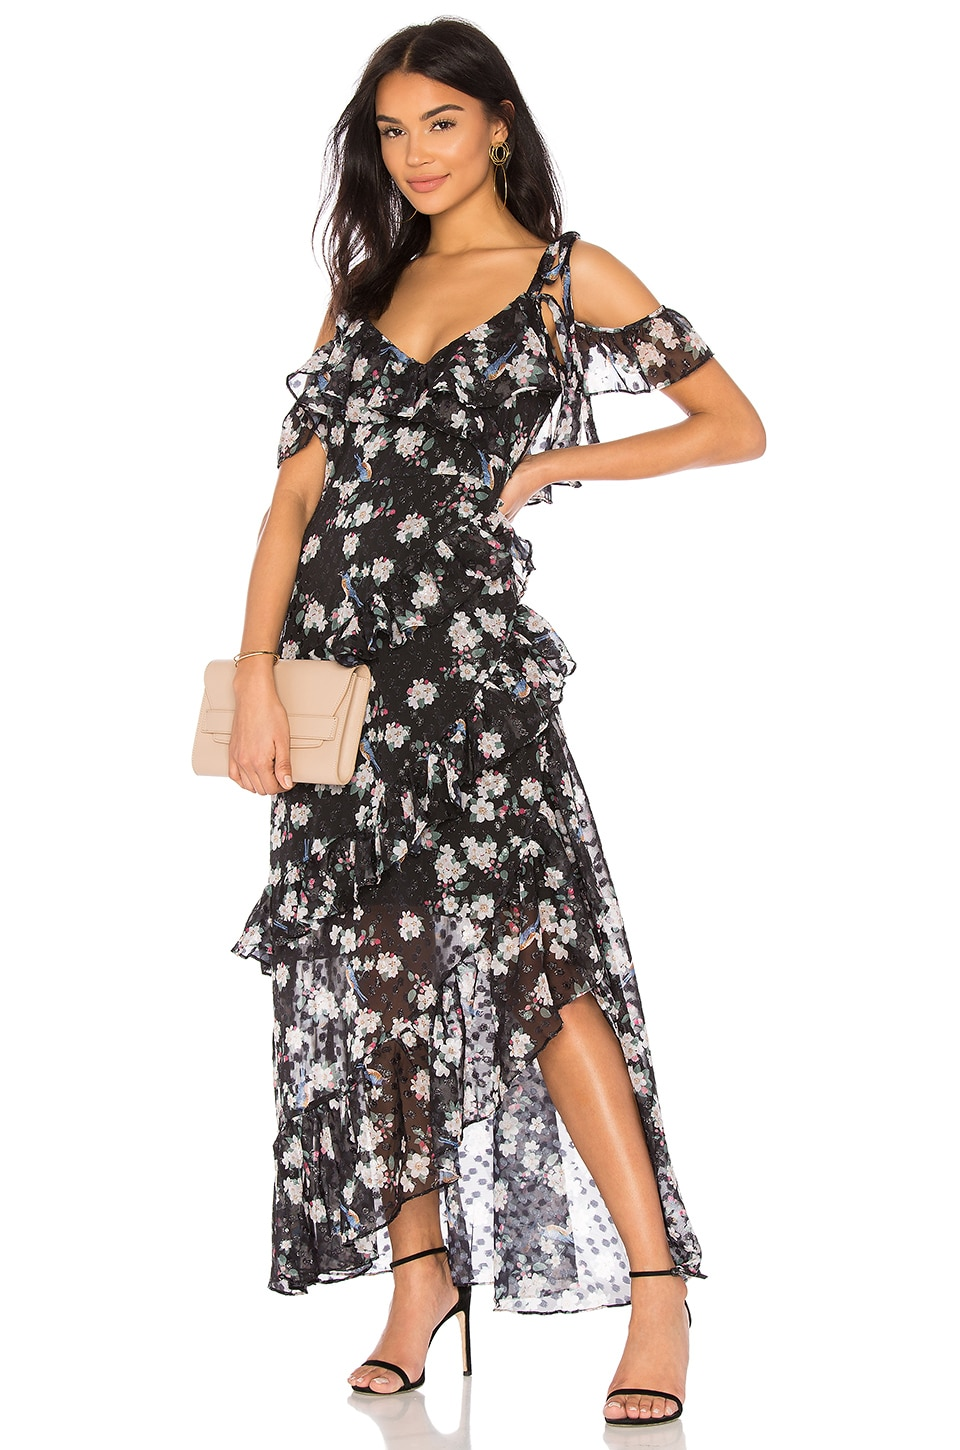 We Are Kindred Pippa Ruffle Maxi Dress in Noir Lurex